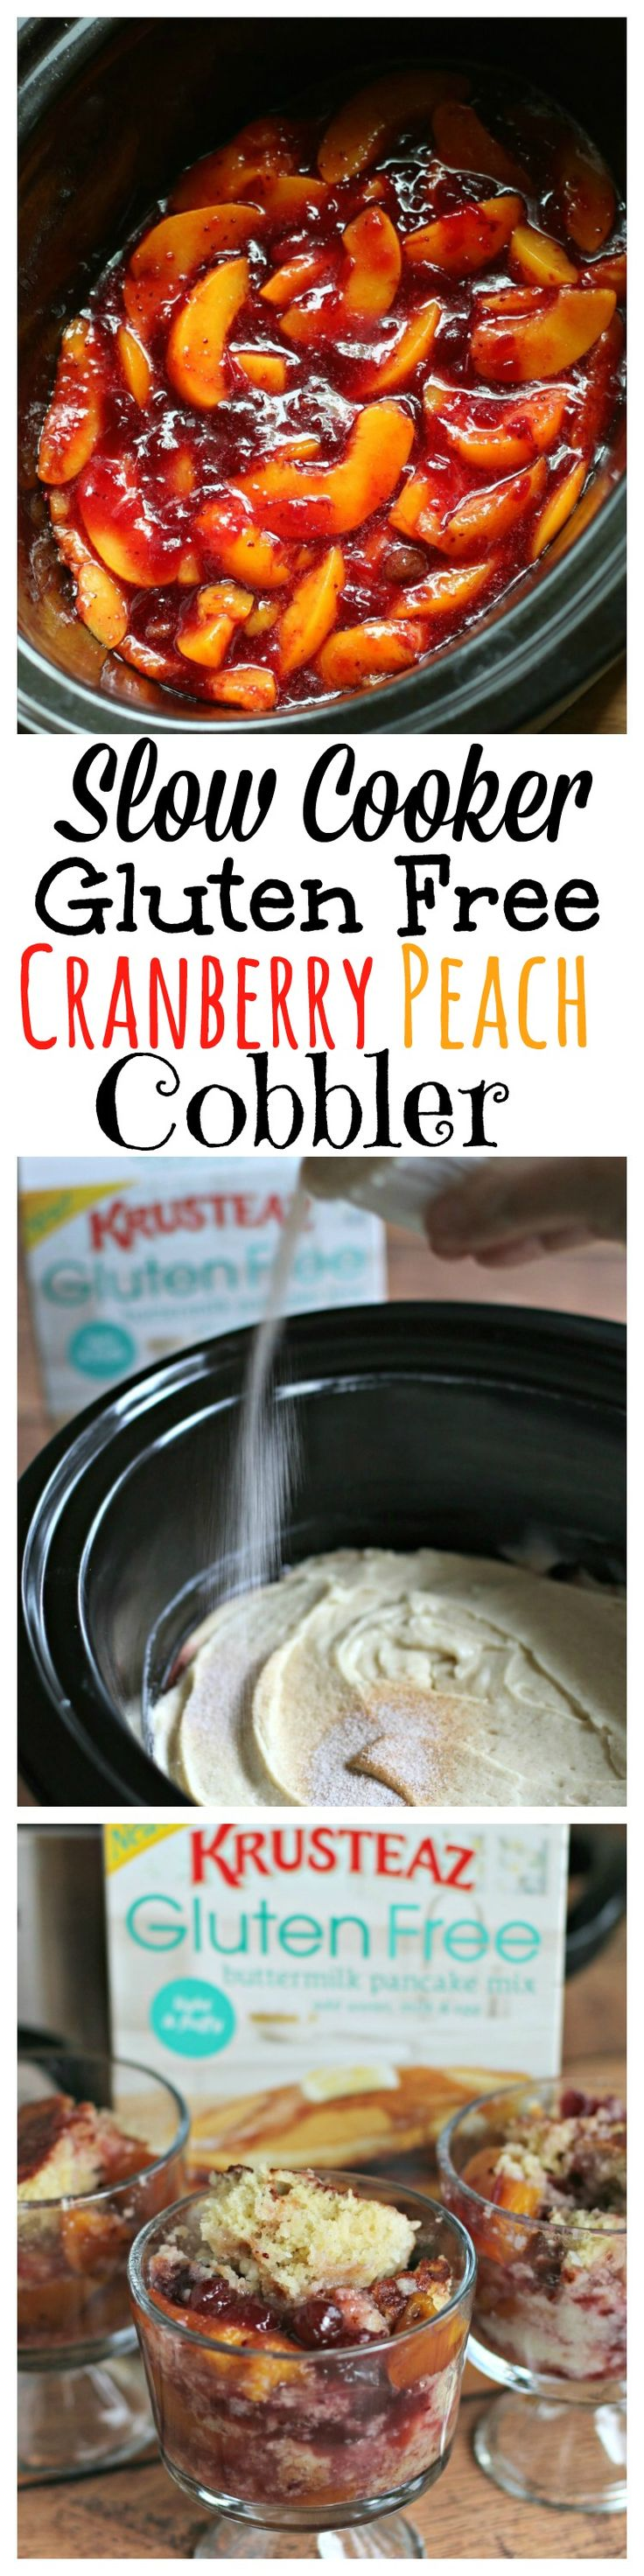 Slow Cooker Gluten Free Cranberry Peach Cobbler #sponsored